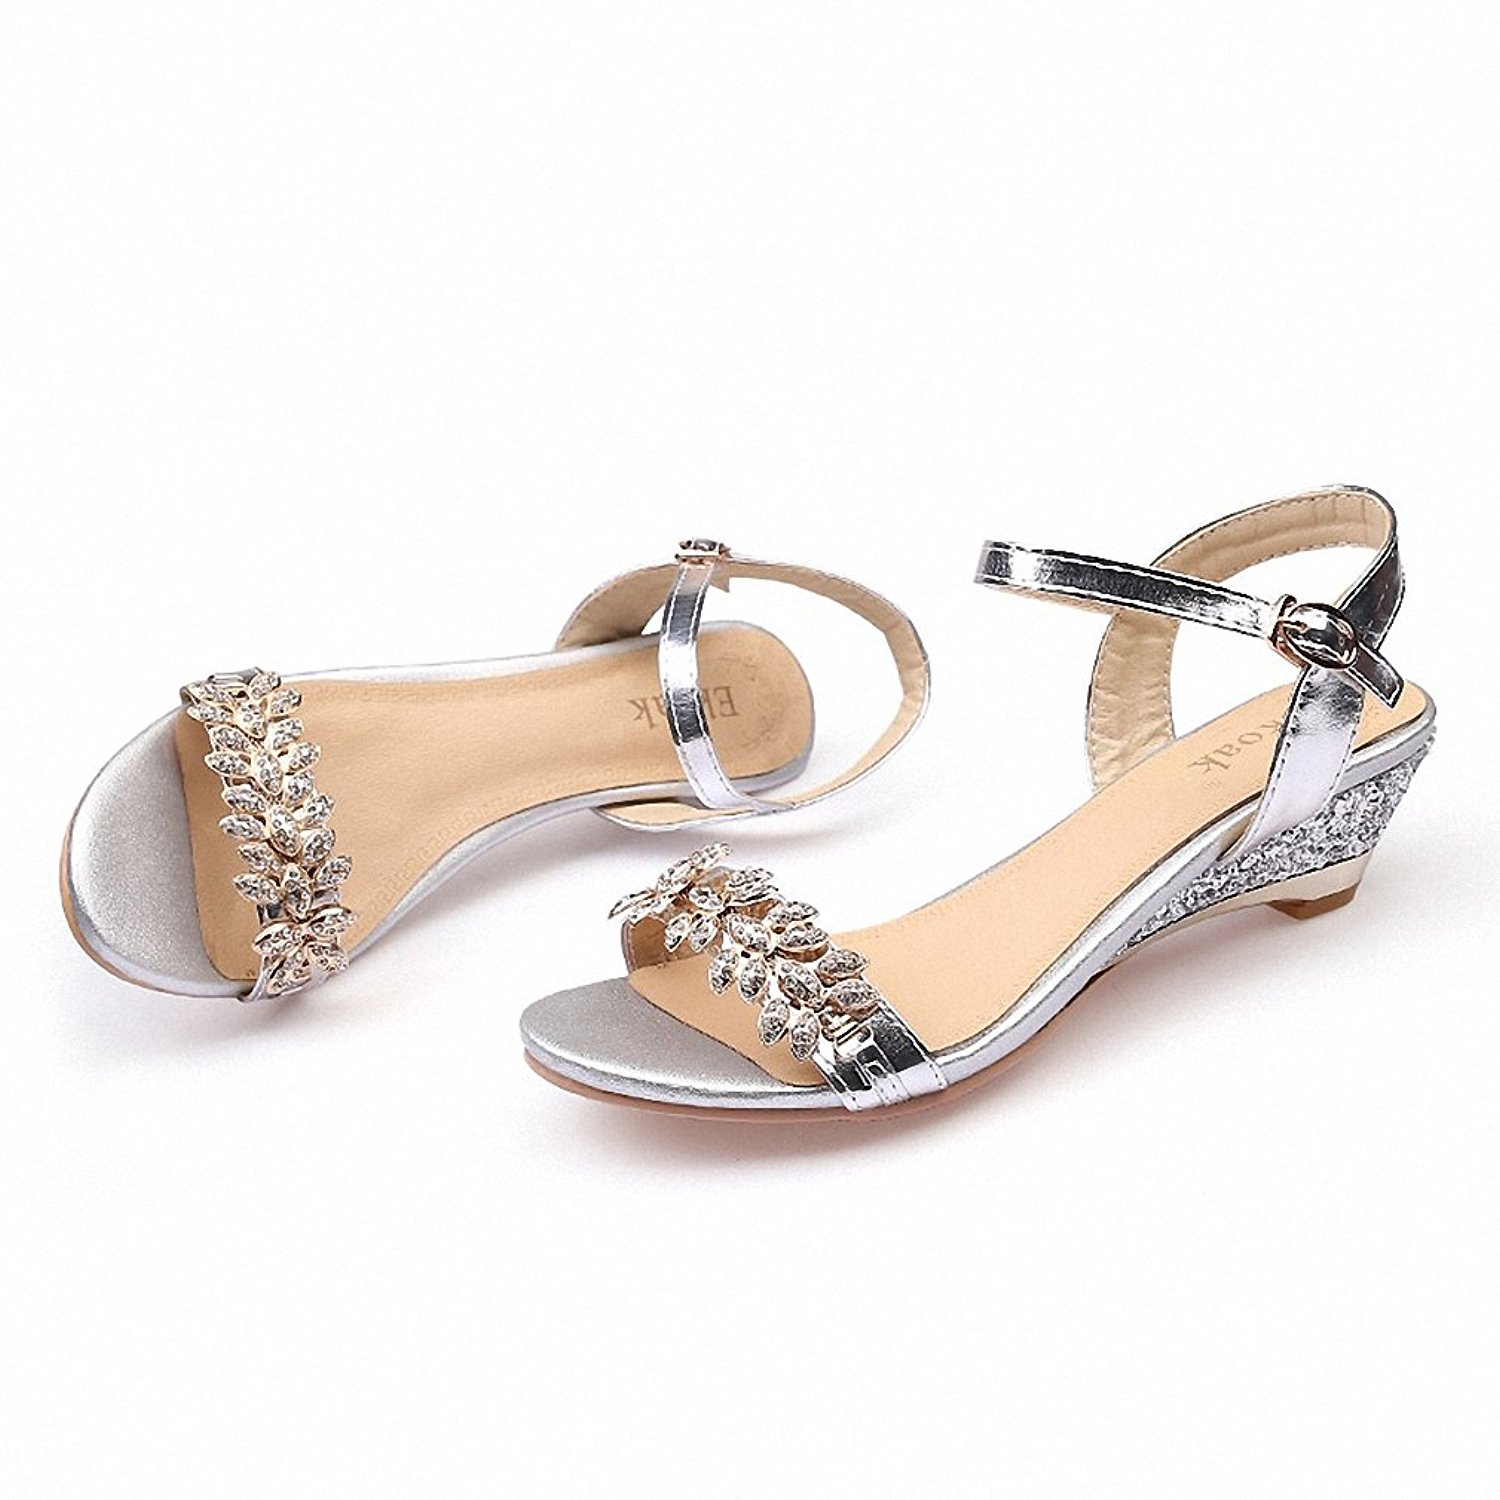 Women Sandals Sexy Crystal Bling Medium Heels Shoes Woman Wedges Sandals Party Dress Shoes